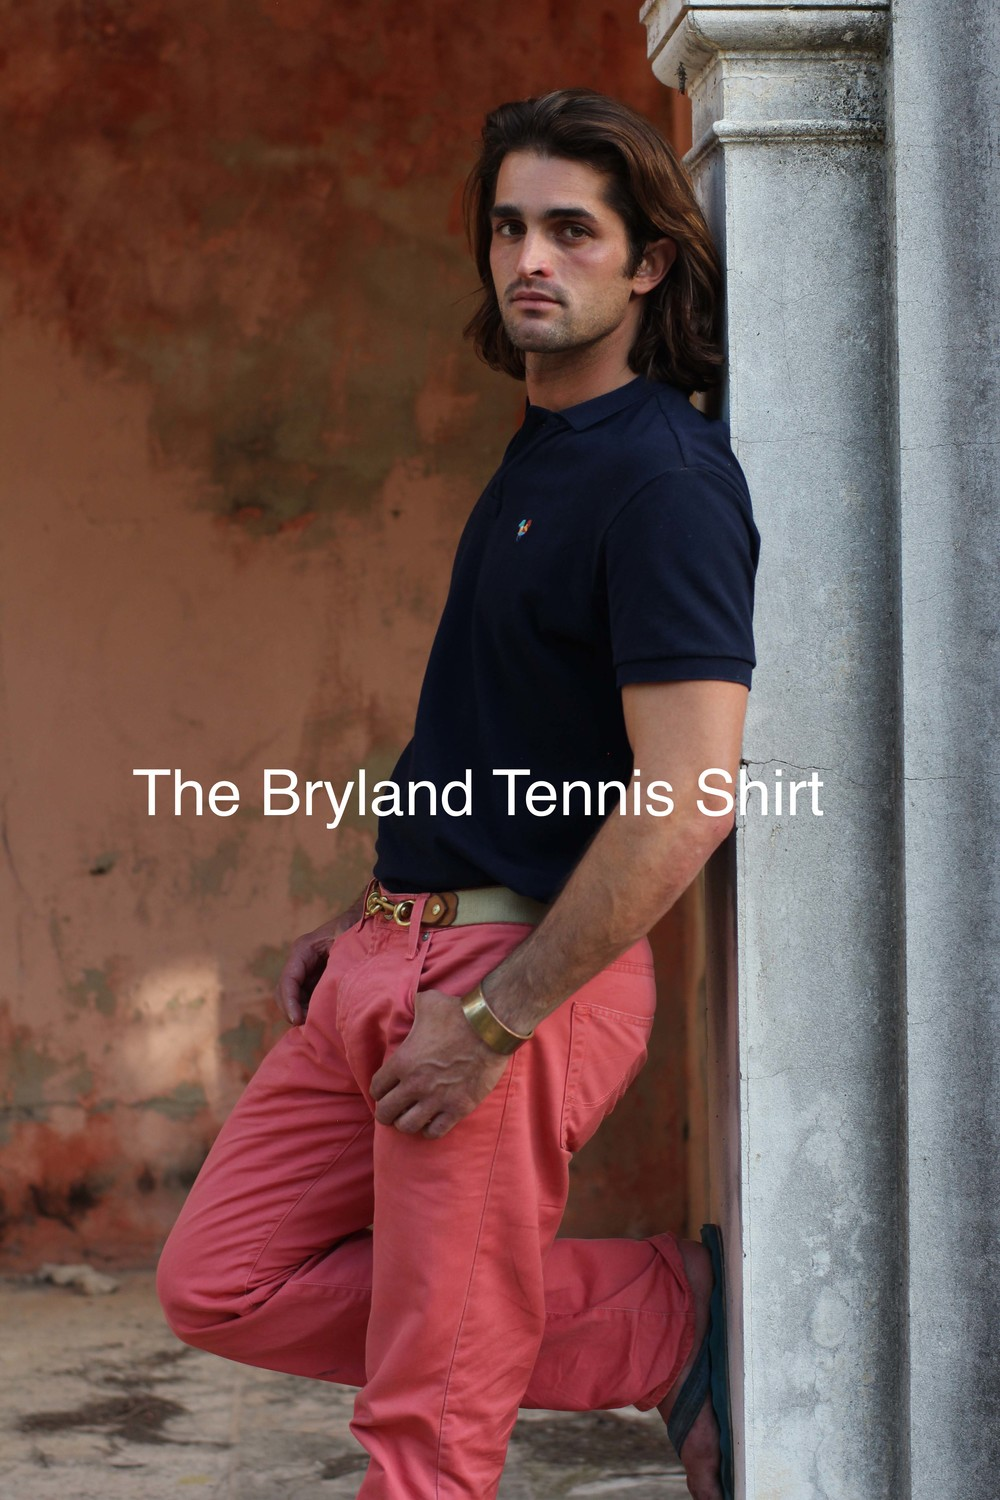 Bryland-9775 with text final.jpeg